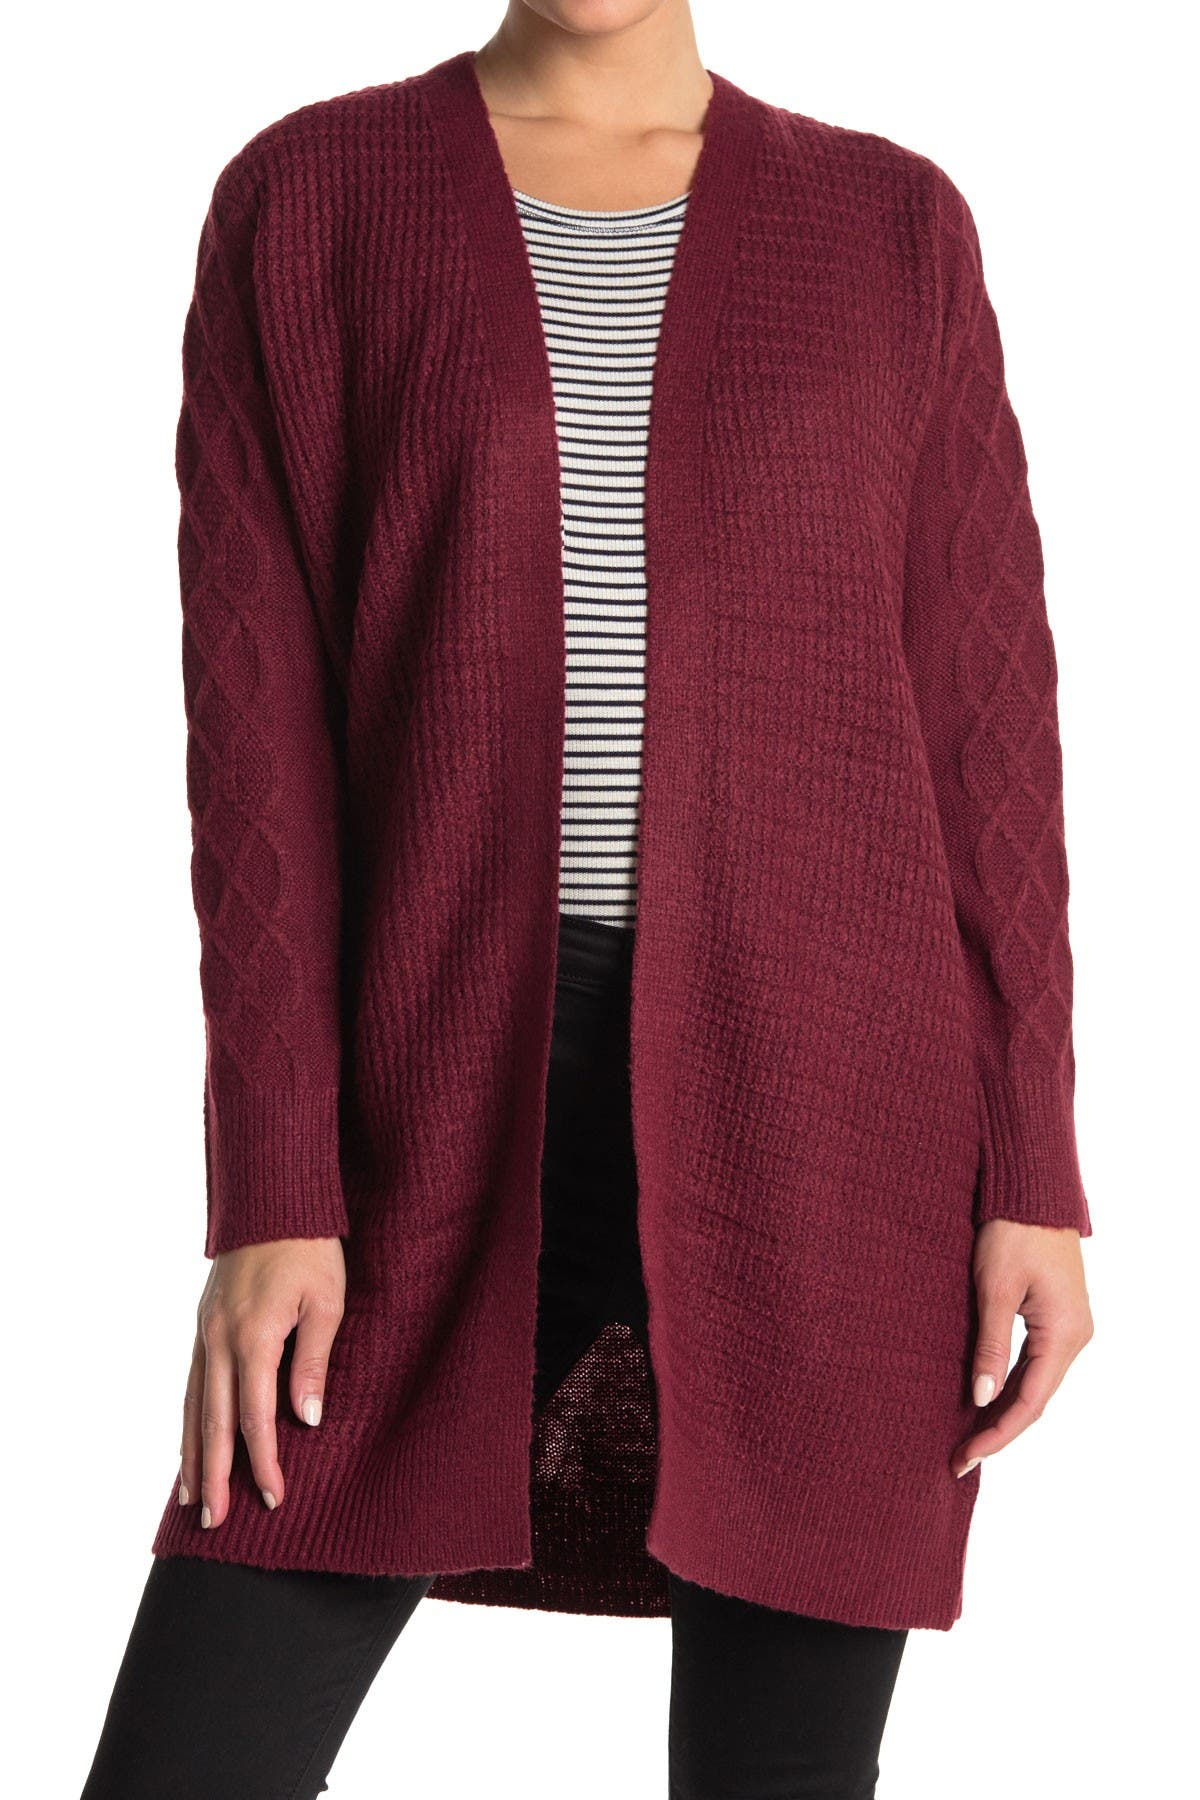 Image of Love by Design Arabella Cable Knit Trim Cardigan